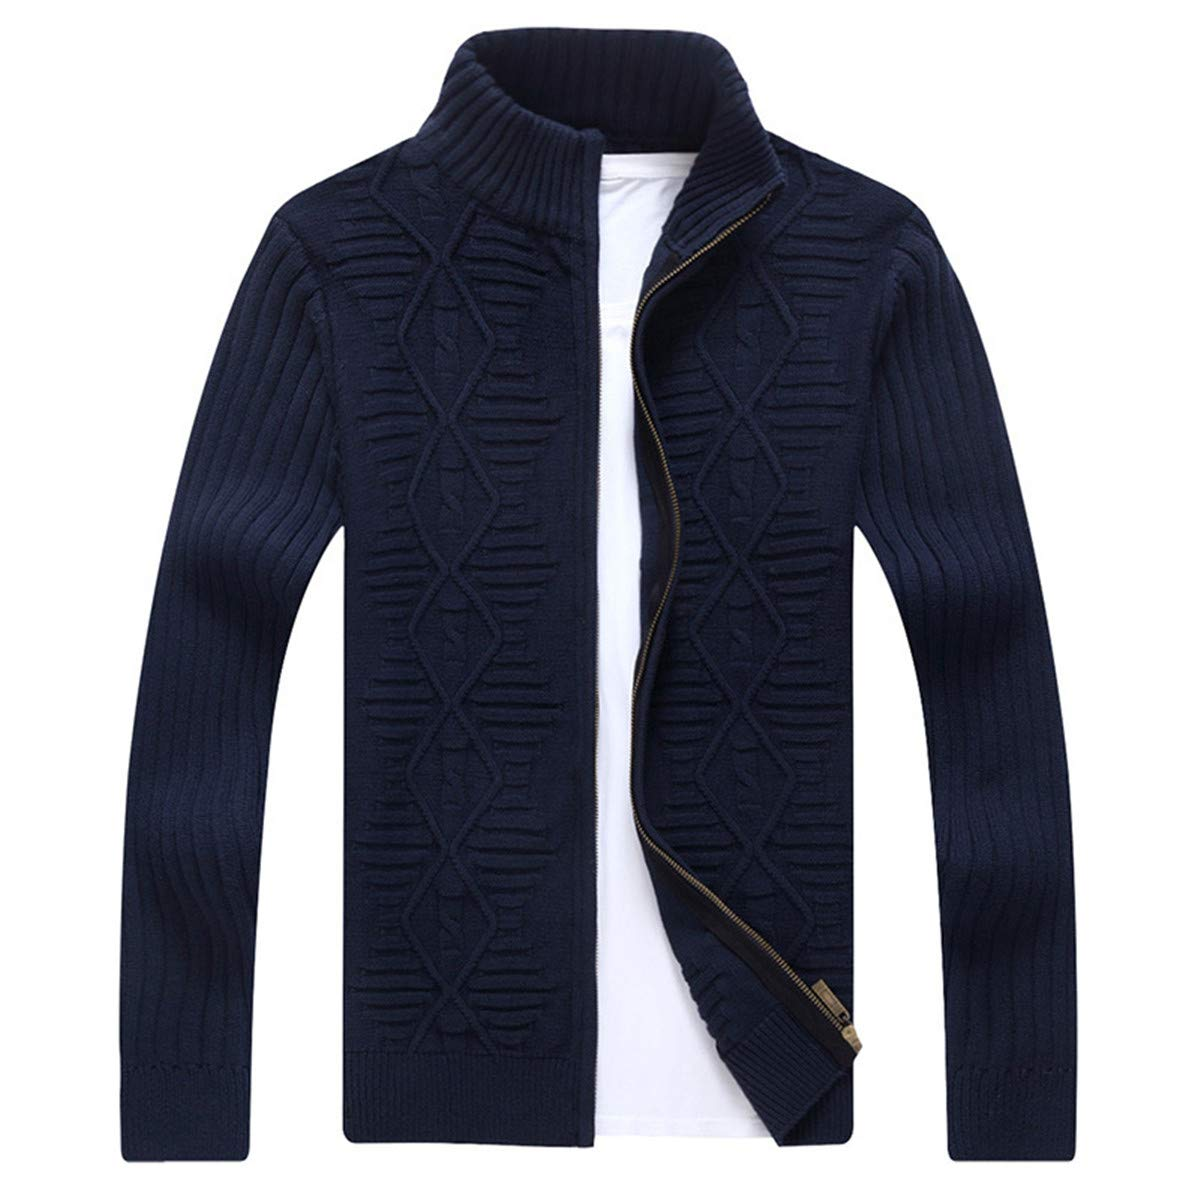 Mens Knitting Full Zip Up Front Wave Pattern Casual Slim Fit Cardigan Sweaters